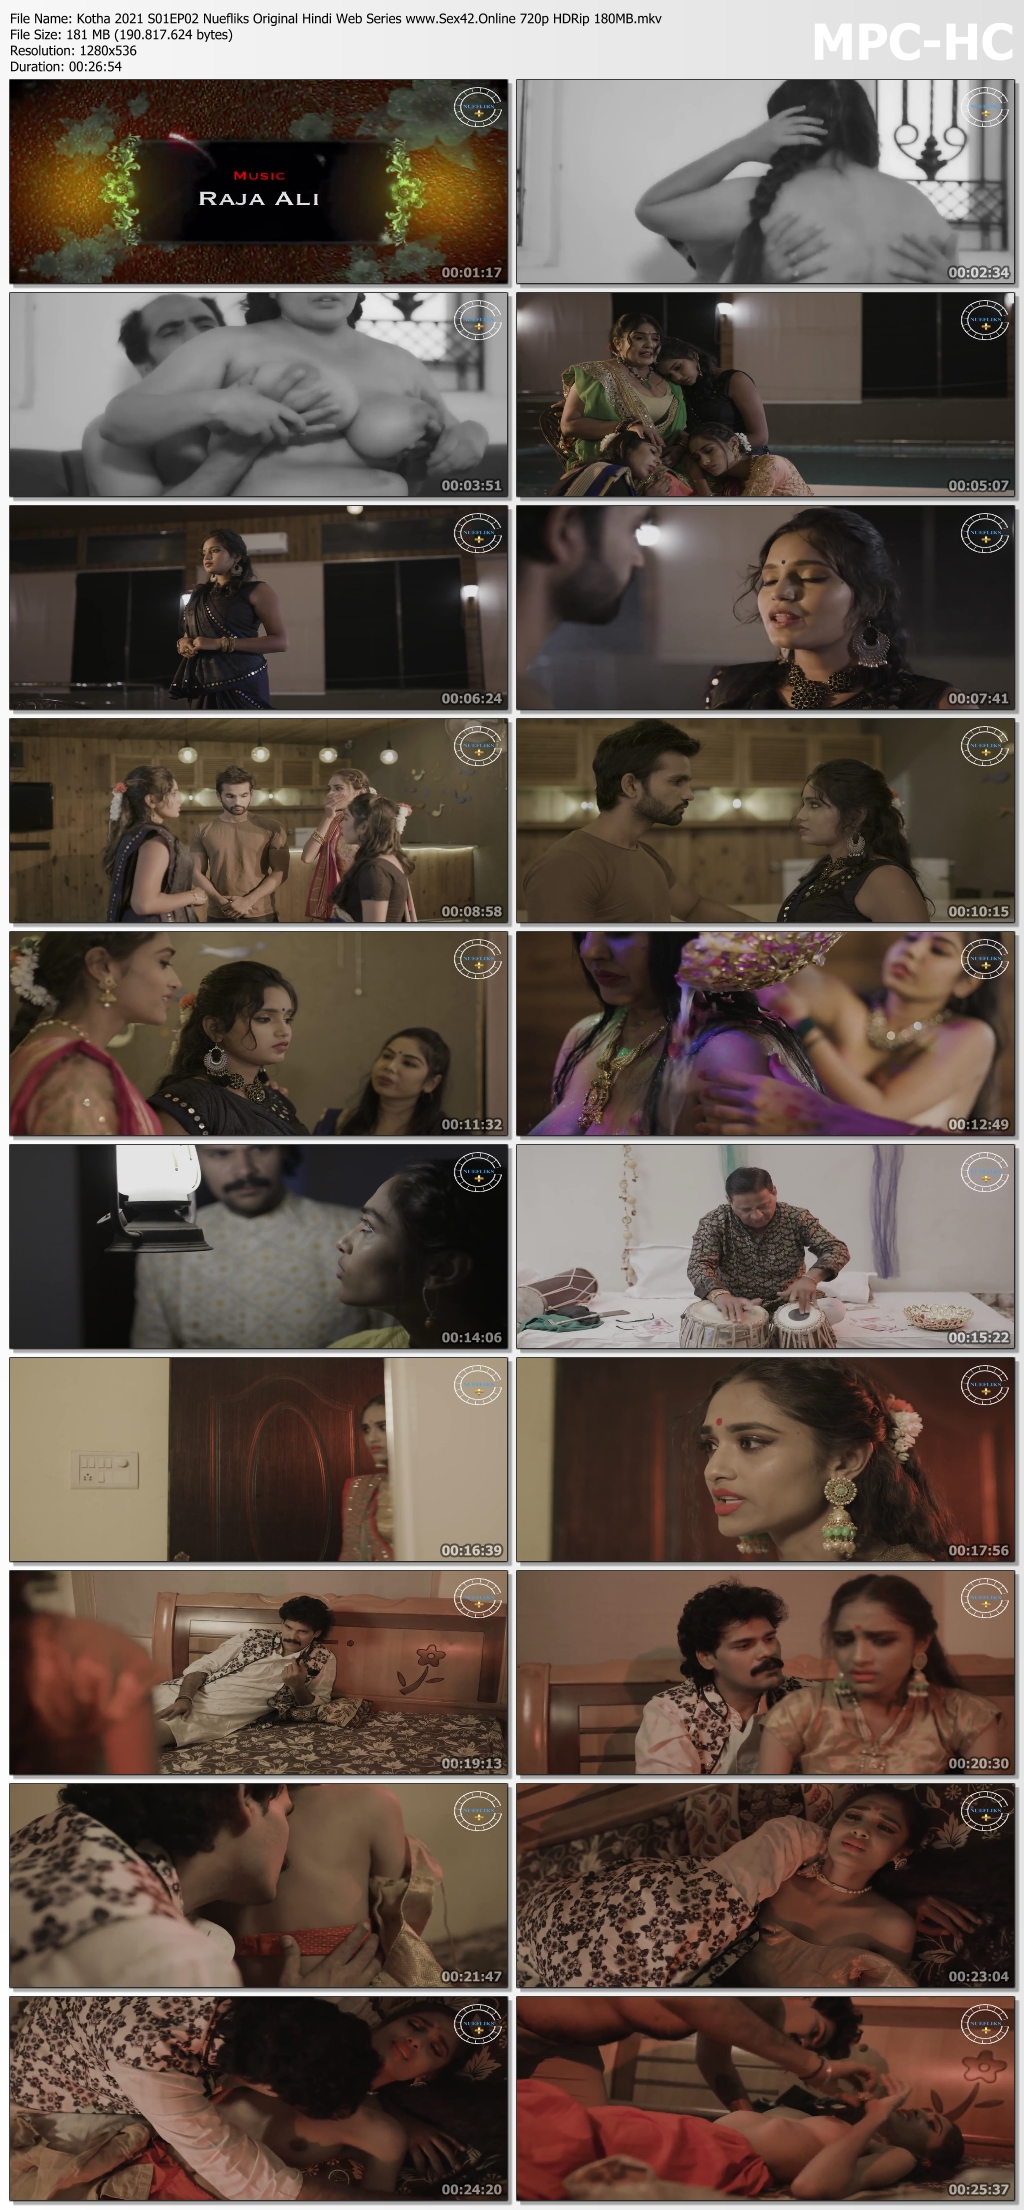 Kotha-2021-S01-EP02-Nuefliks-Original-Hindi-Web-Series-www-Sex42-Online-720p-HDRip-180-MB-mkv-thumbs